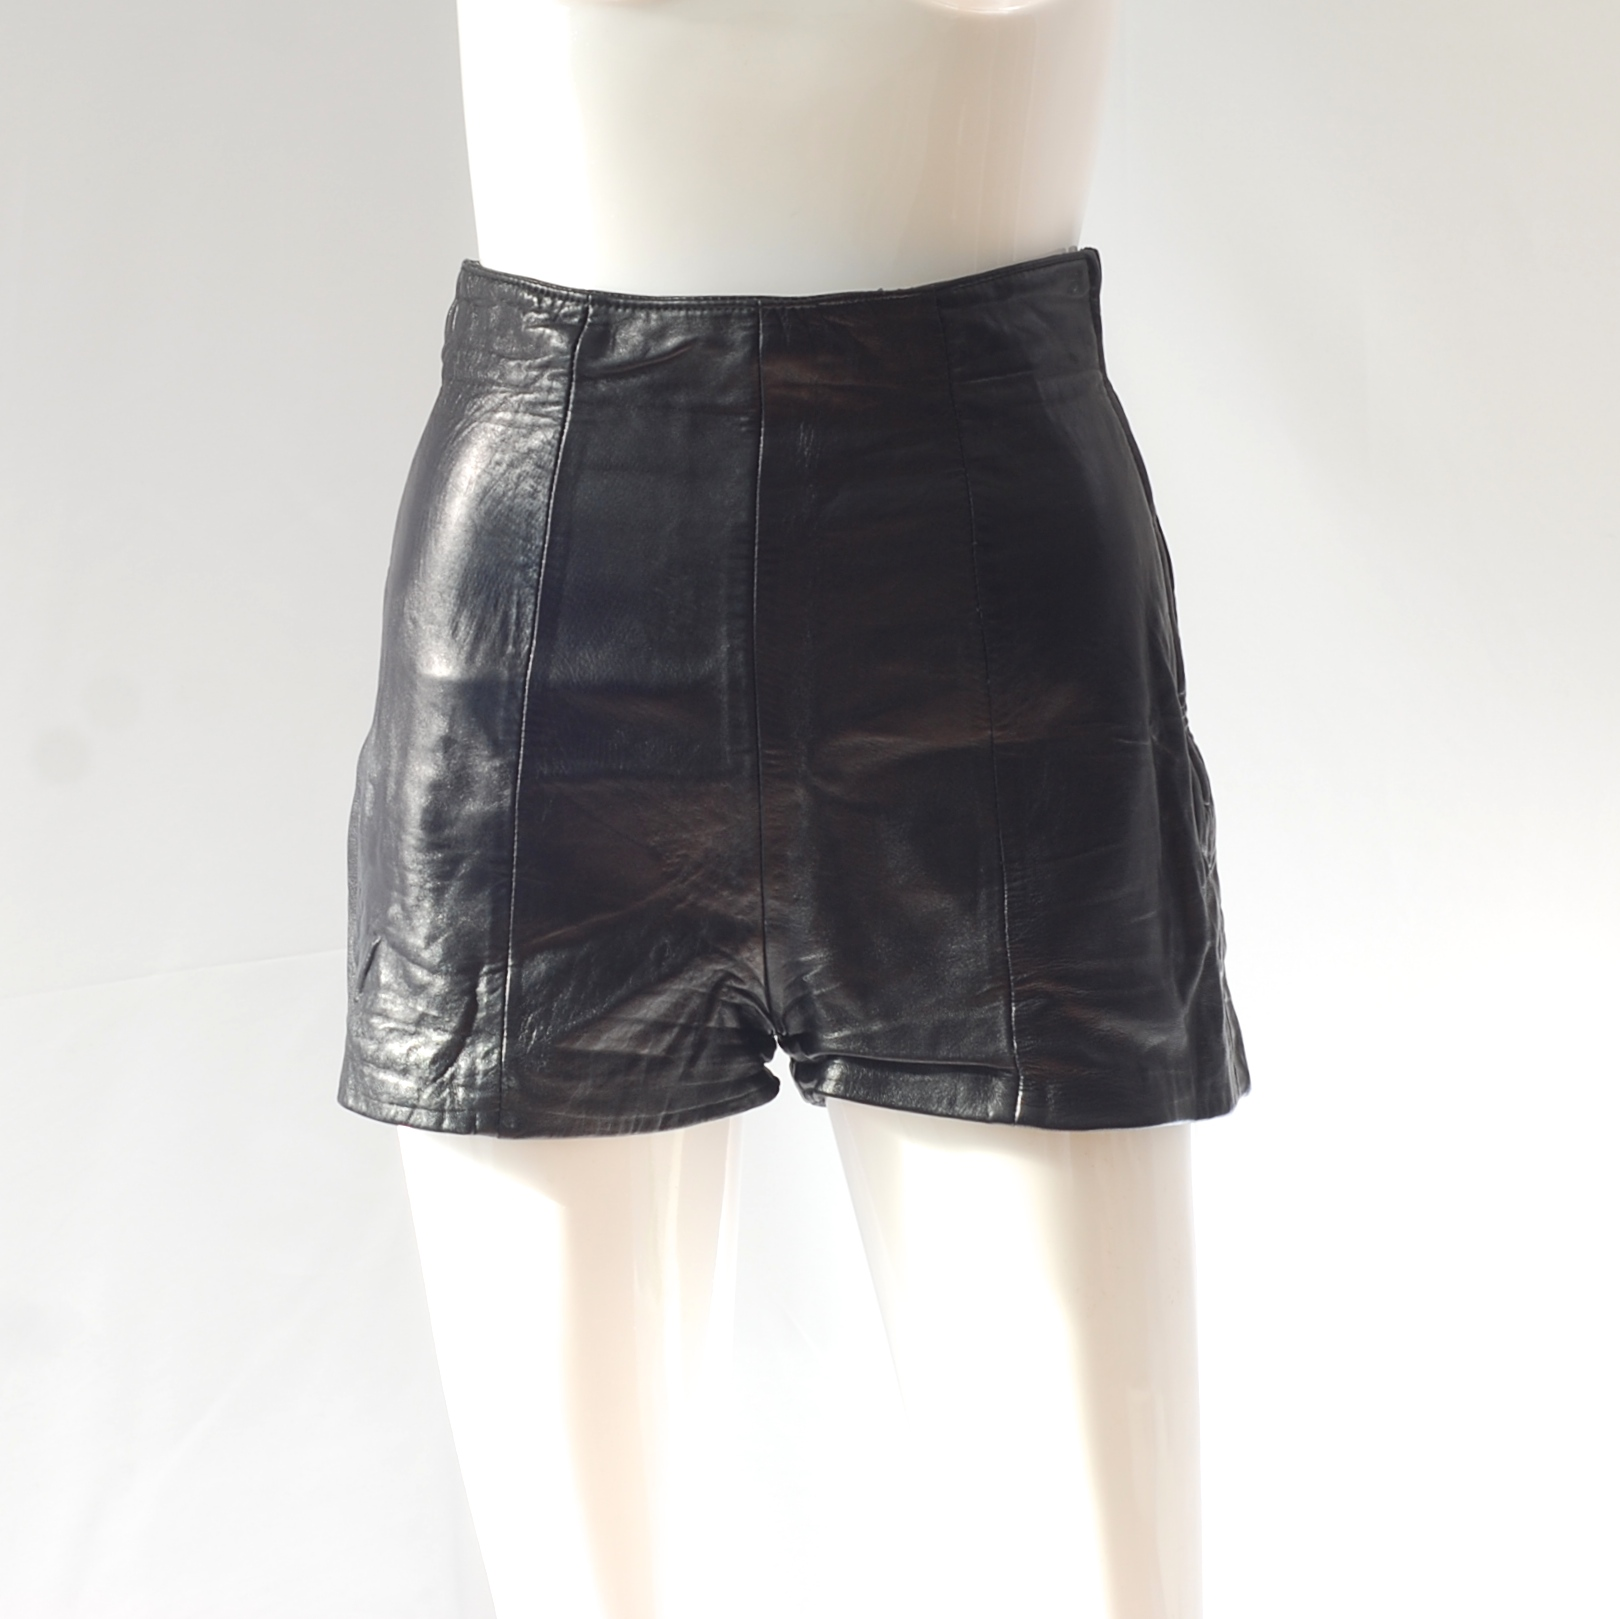 c7a472f372 Michael Hoban For North Beach 1980 s High Waisted Black Leather Shorts